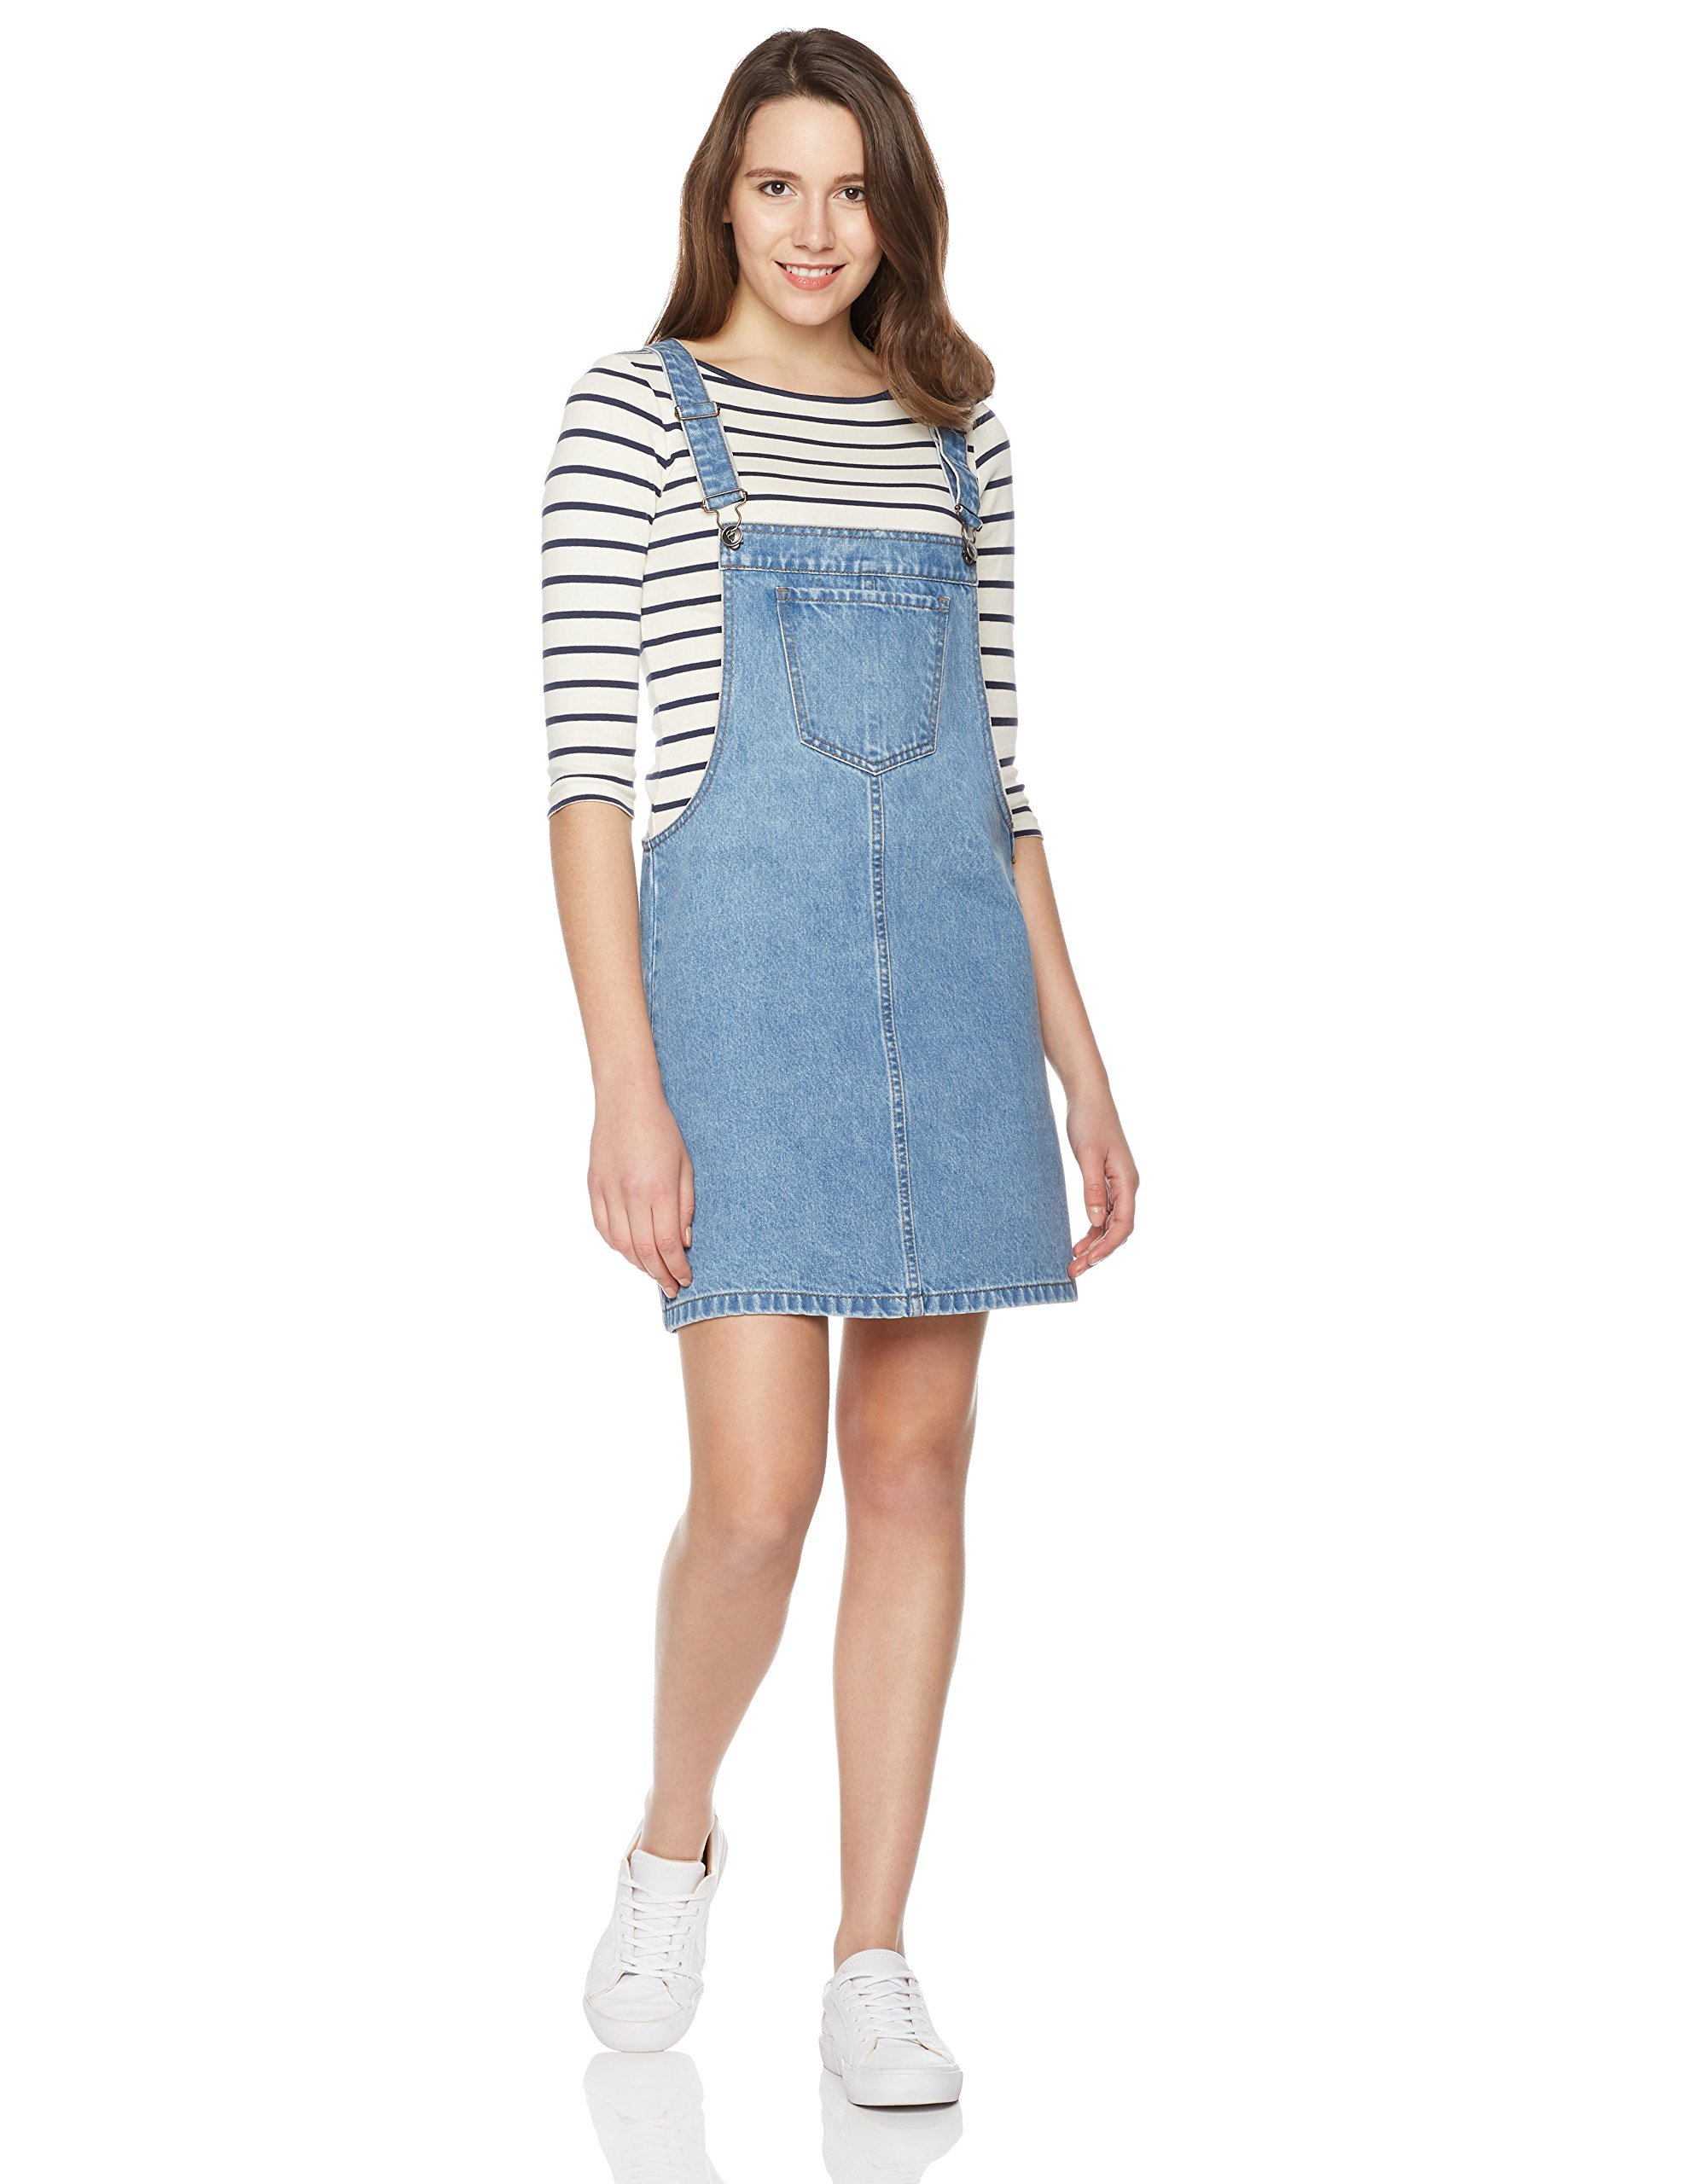 Lily Parker Women's Classic Adjustable Strap Denim Overall Dress X-Large Light Blue by Lily Parker